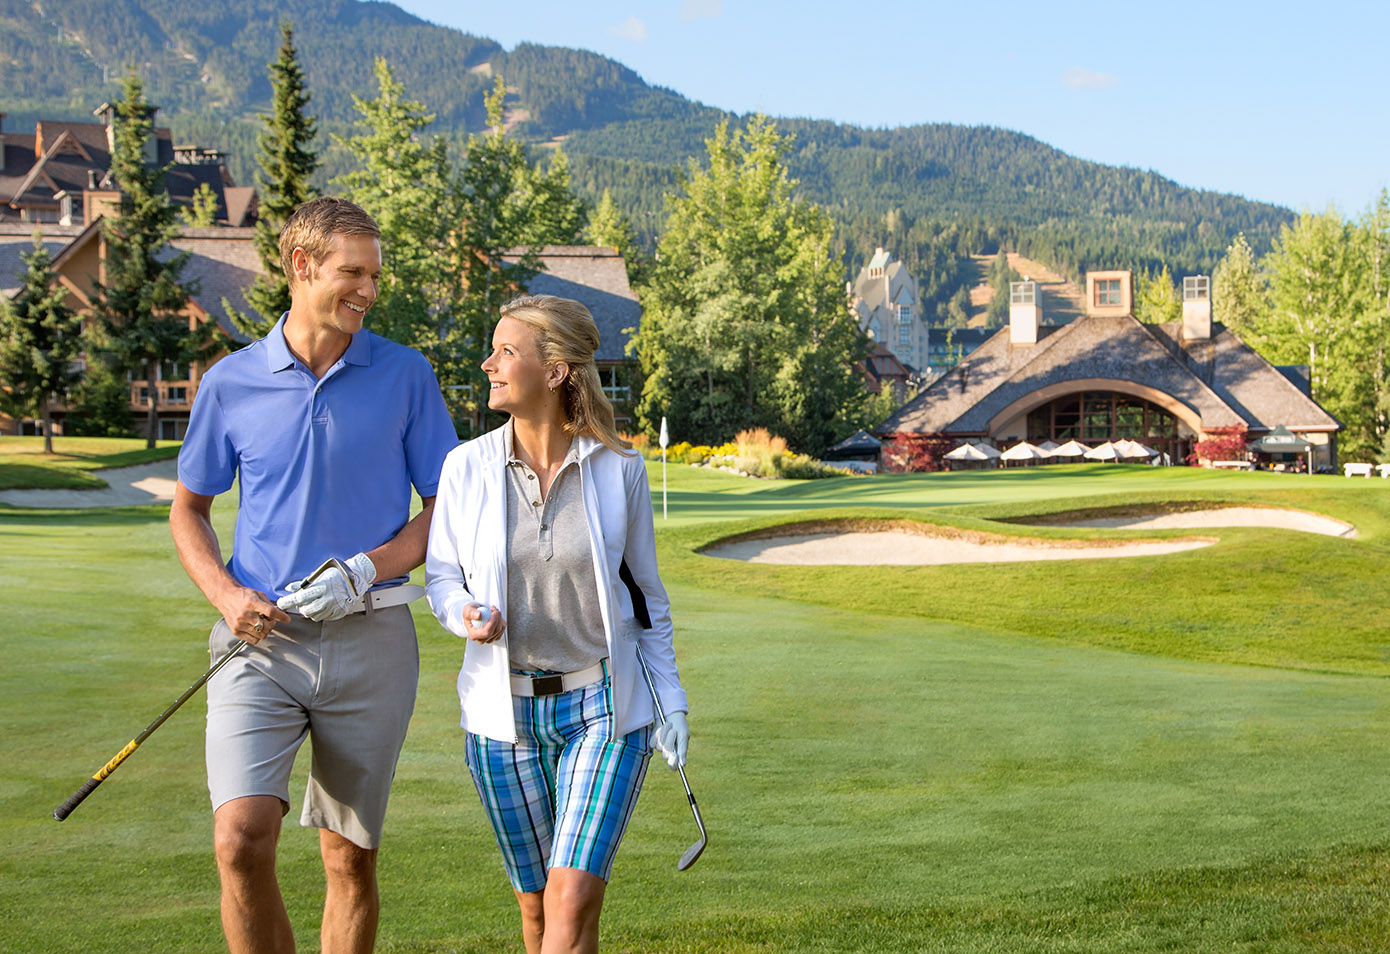 Unlimited golf at Fairmont Chateau Whistler Golf Club